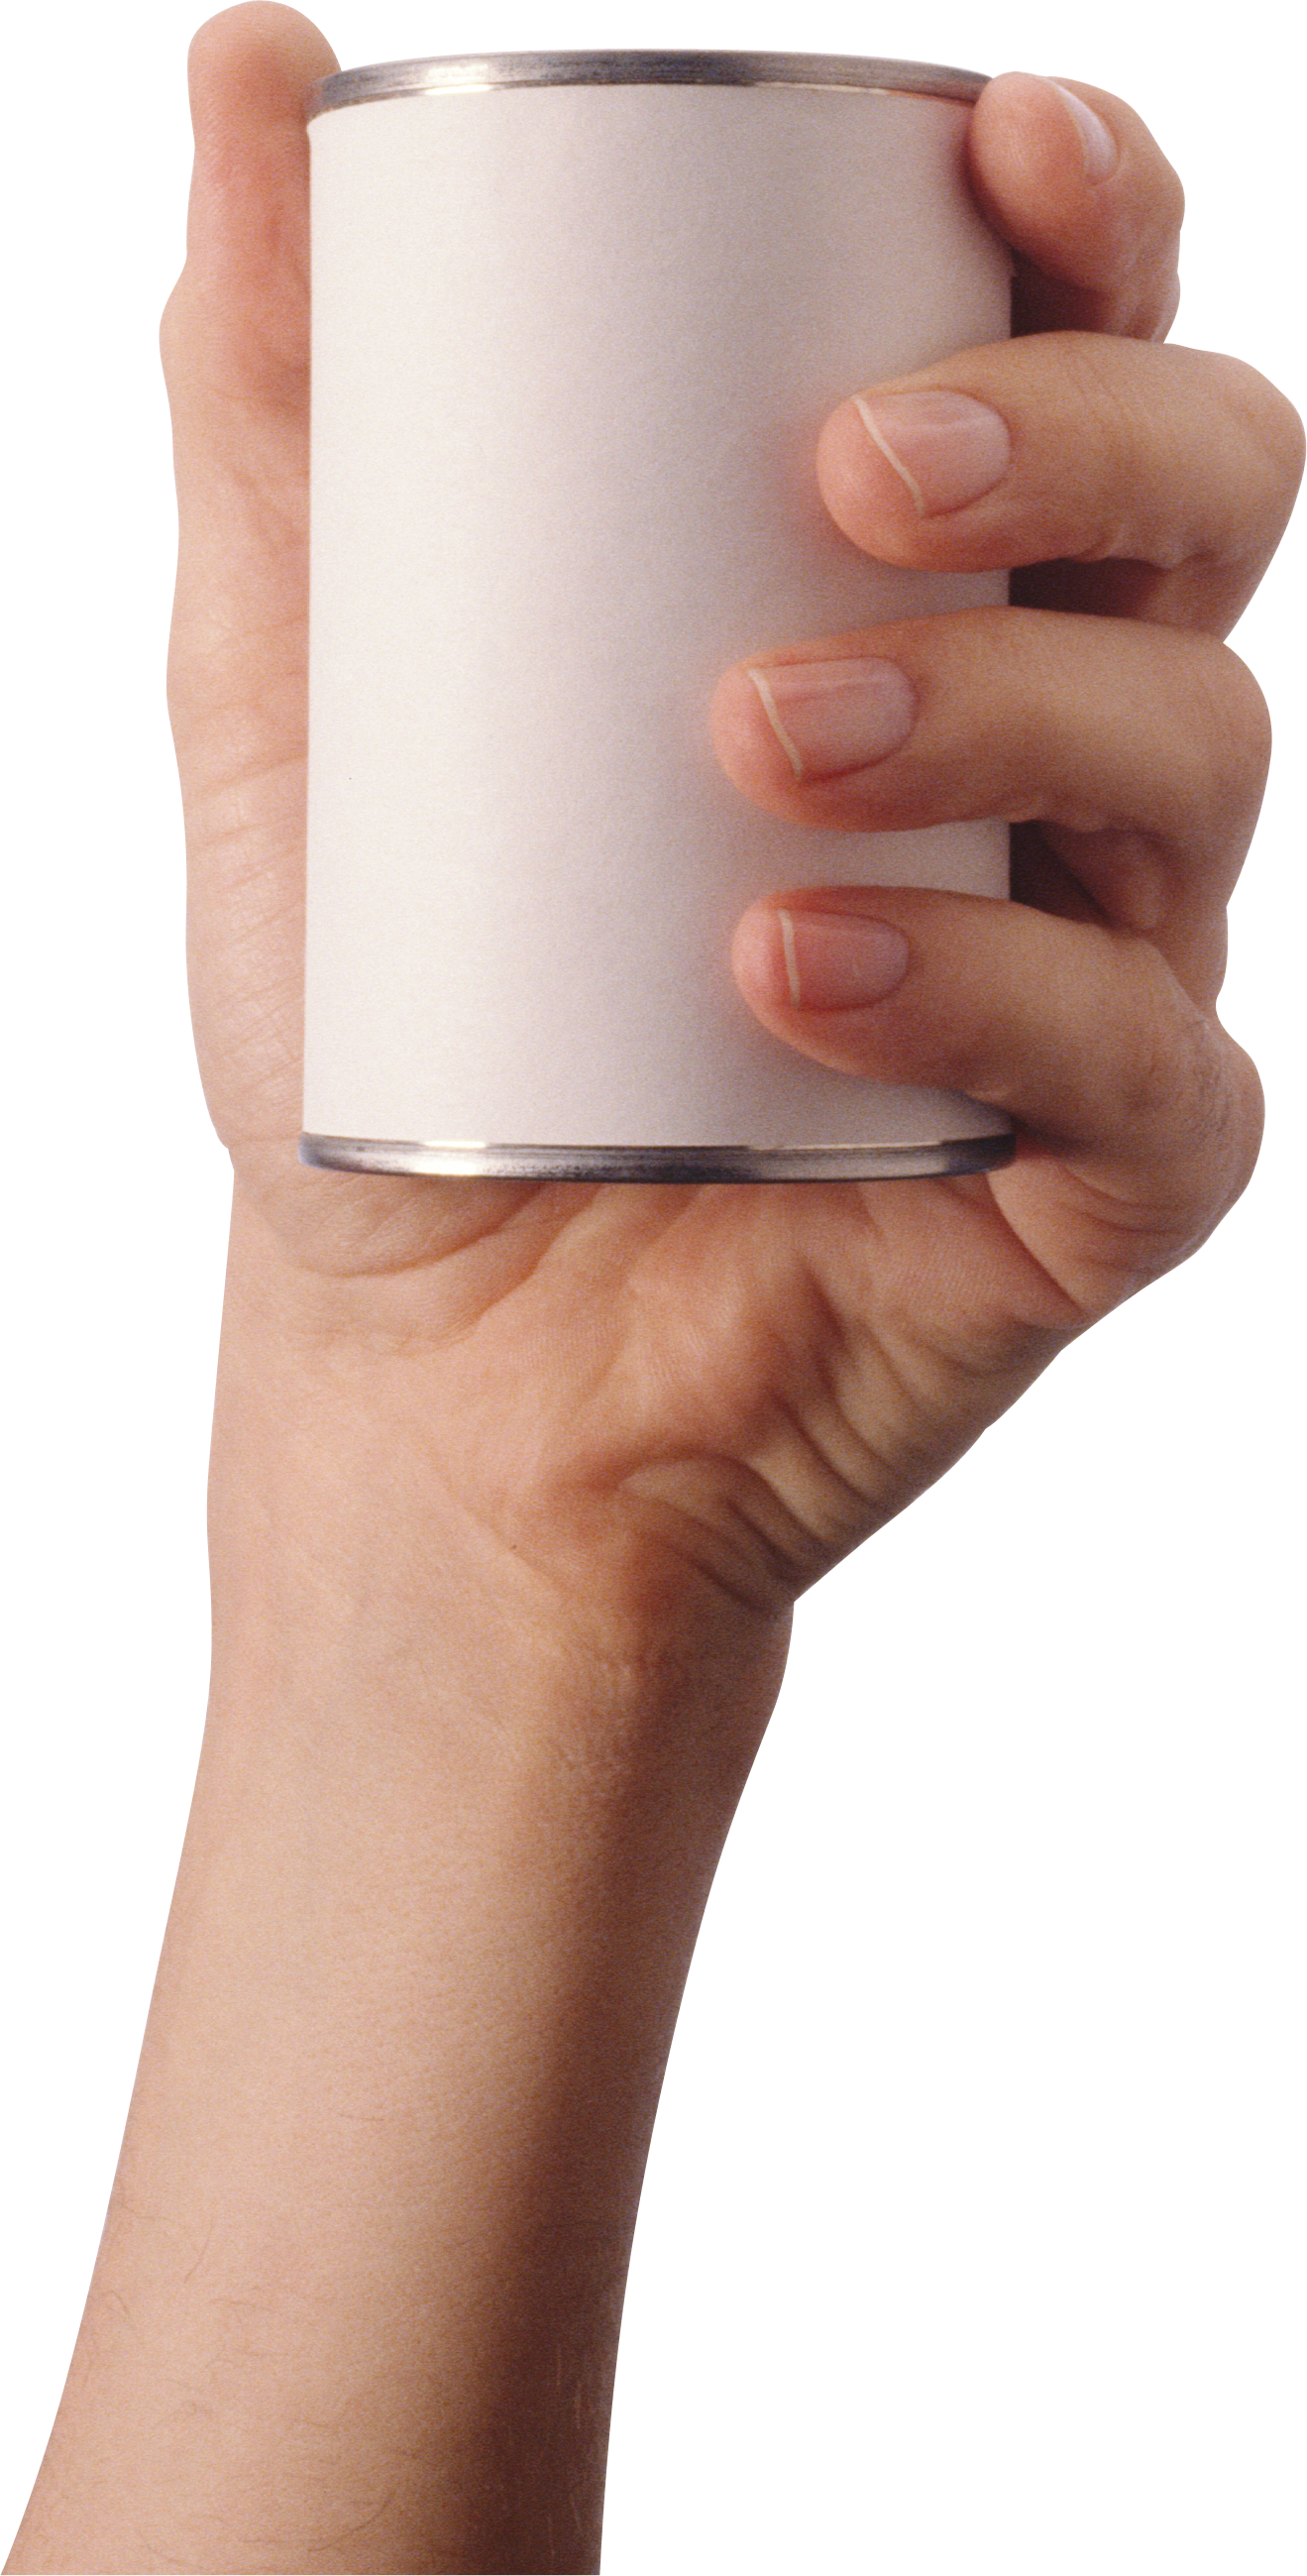 Hand holding food can. Cup clipart hands